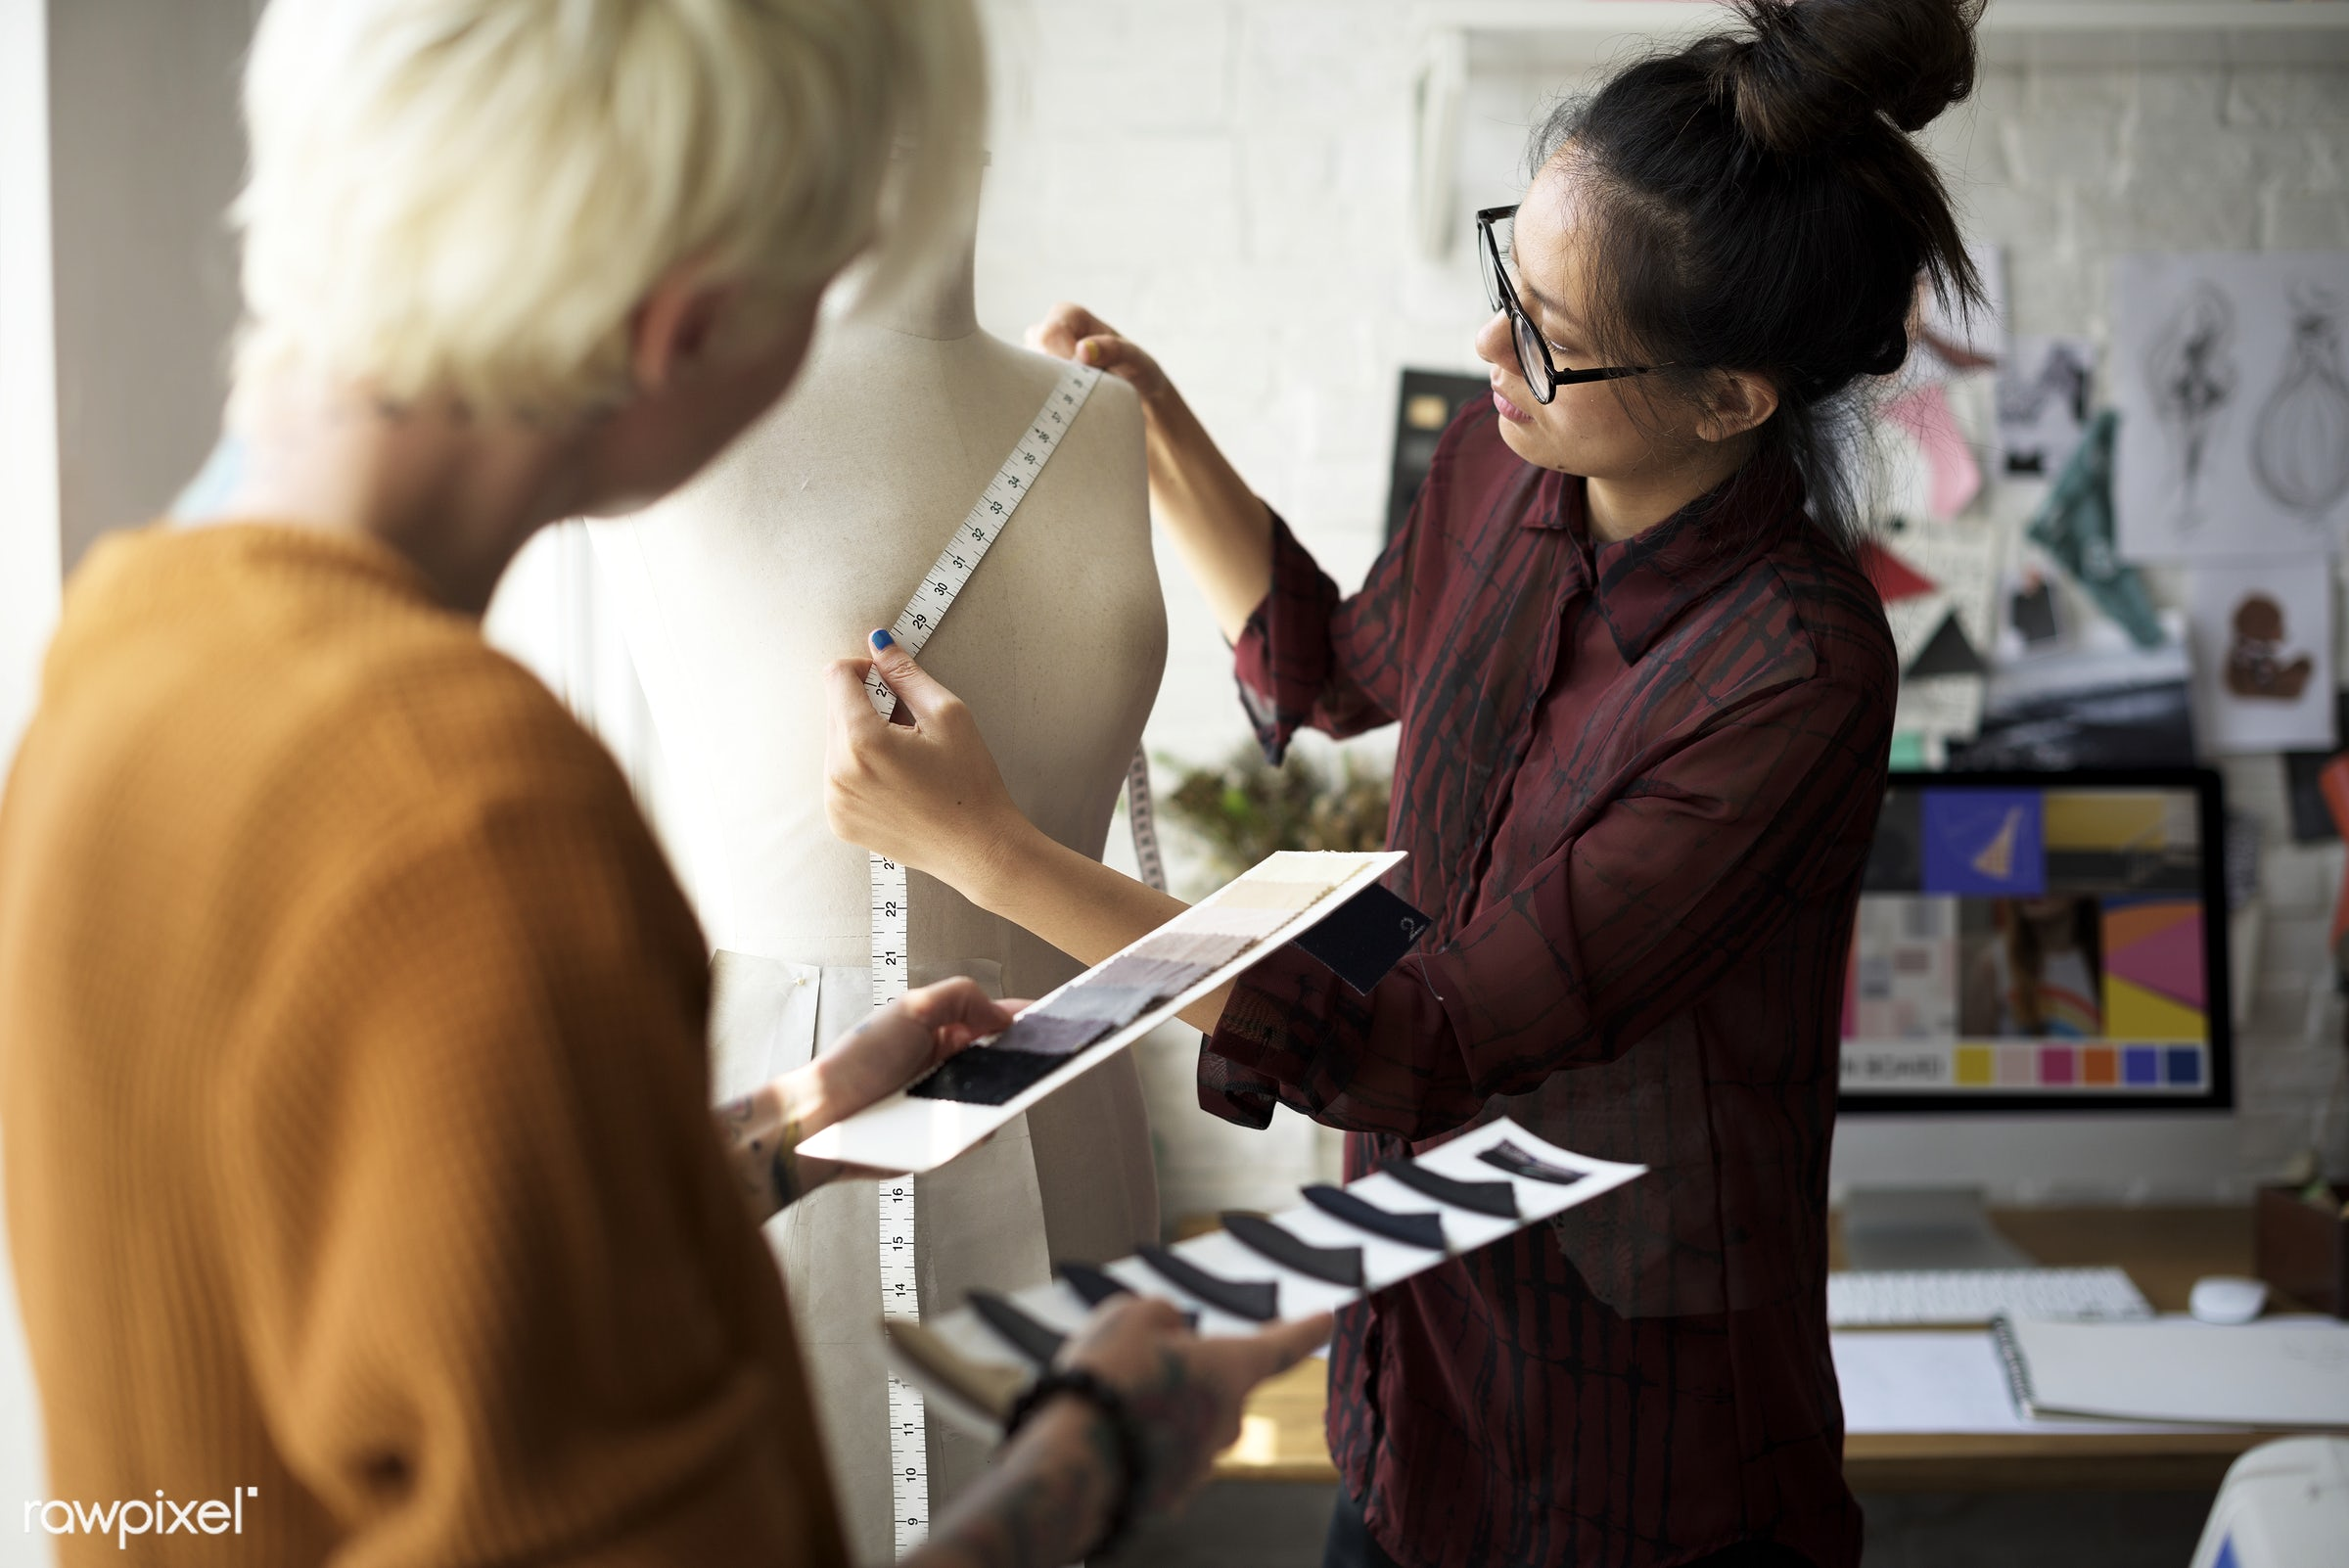 Fashion designer using a measuring tape on a manequin - model, fashion, measure, clothing materials, clothing, designing,...